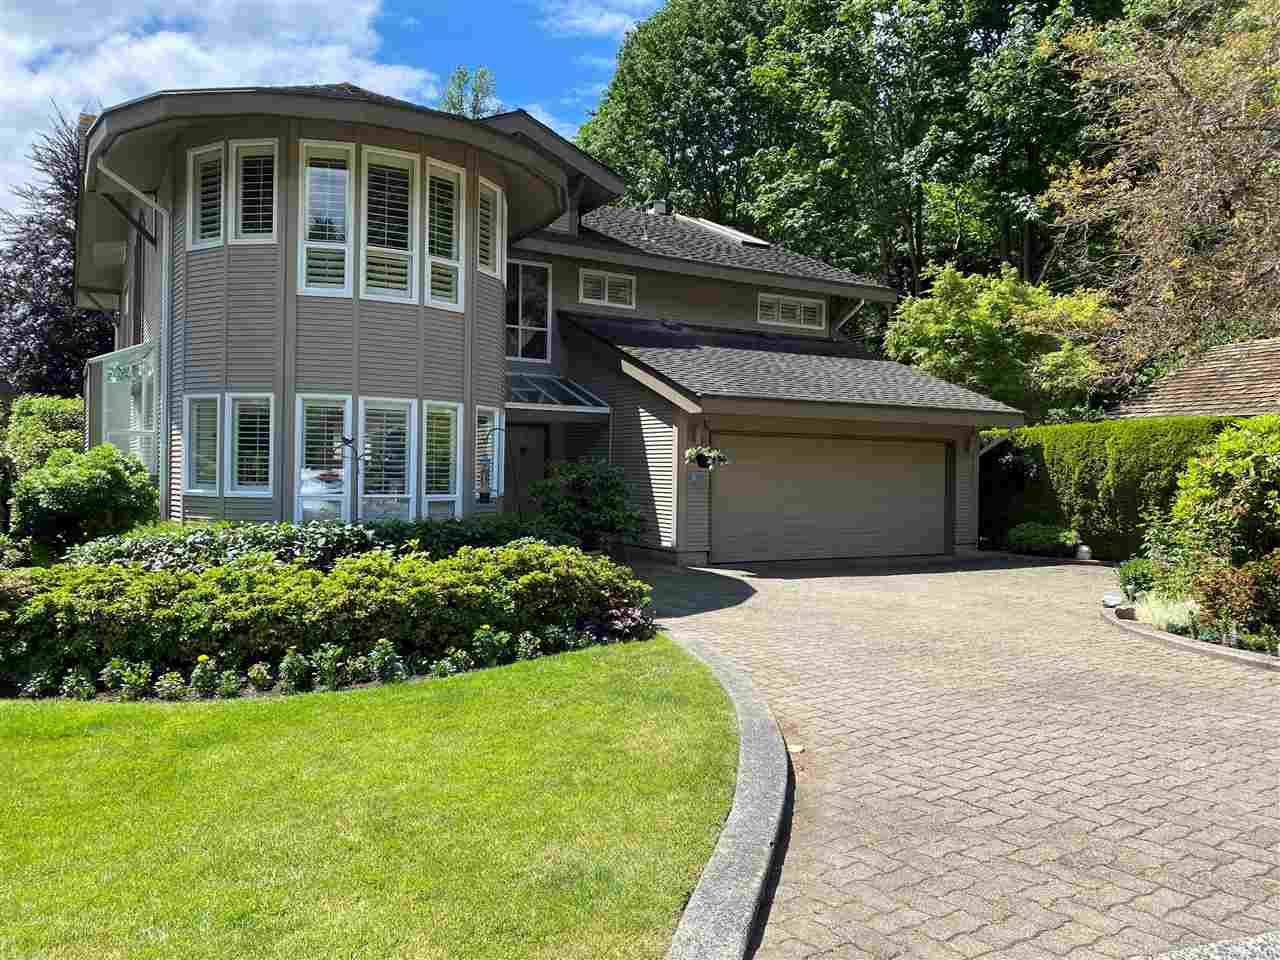 """Main Photo: 6940 ODLUM Court in West Vancouver: Whytecliff House for sale in """"ROCKWOOD ESTATES"""" : MLS®# R2593751"""